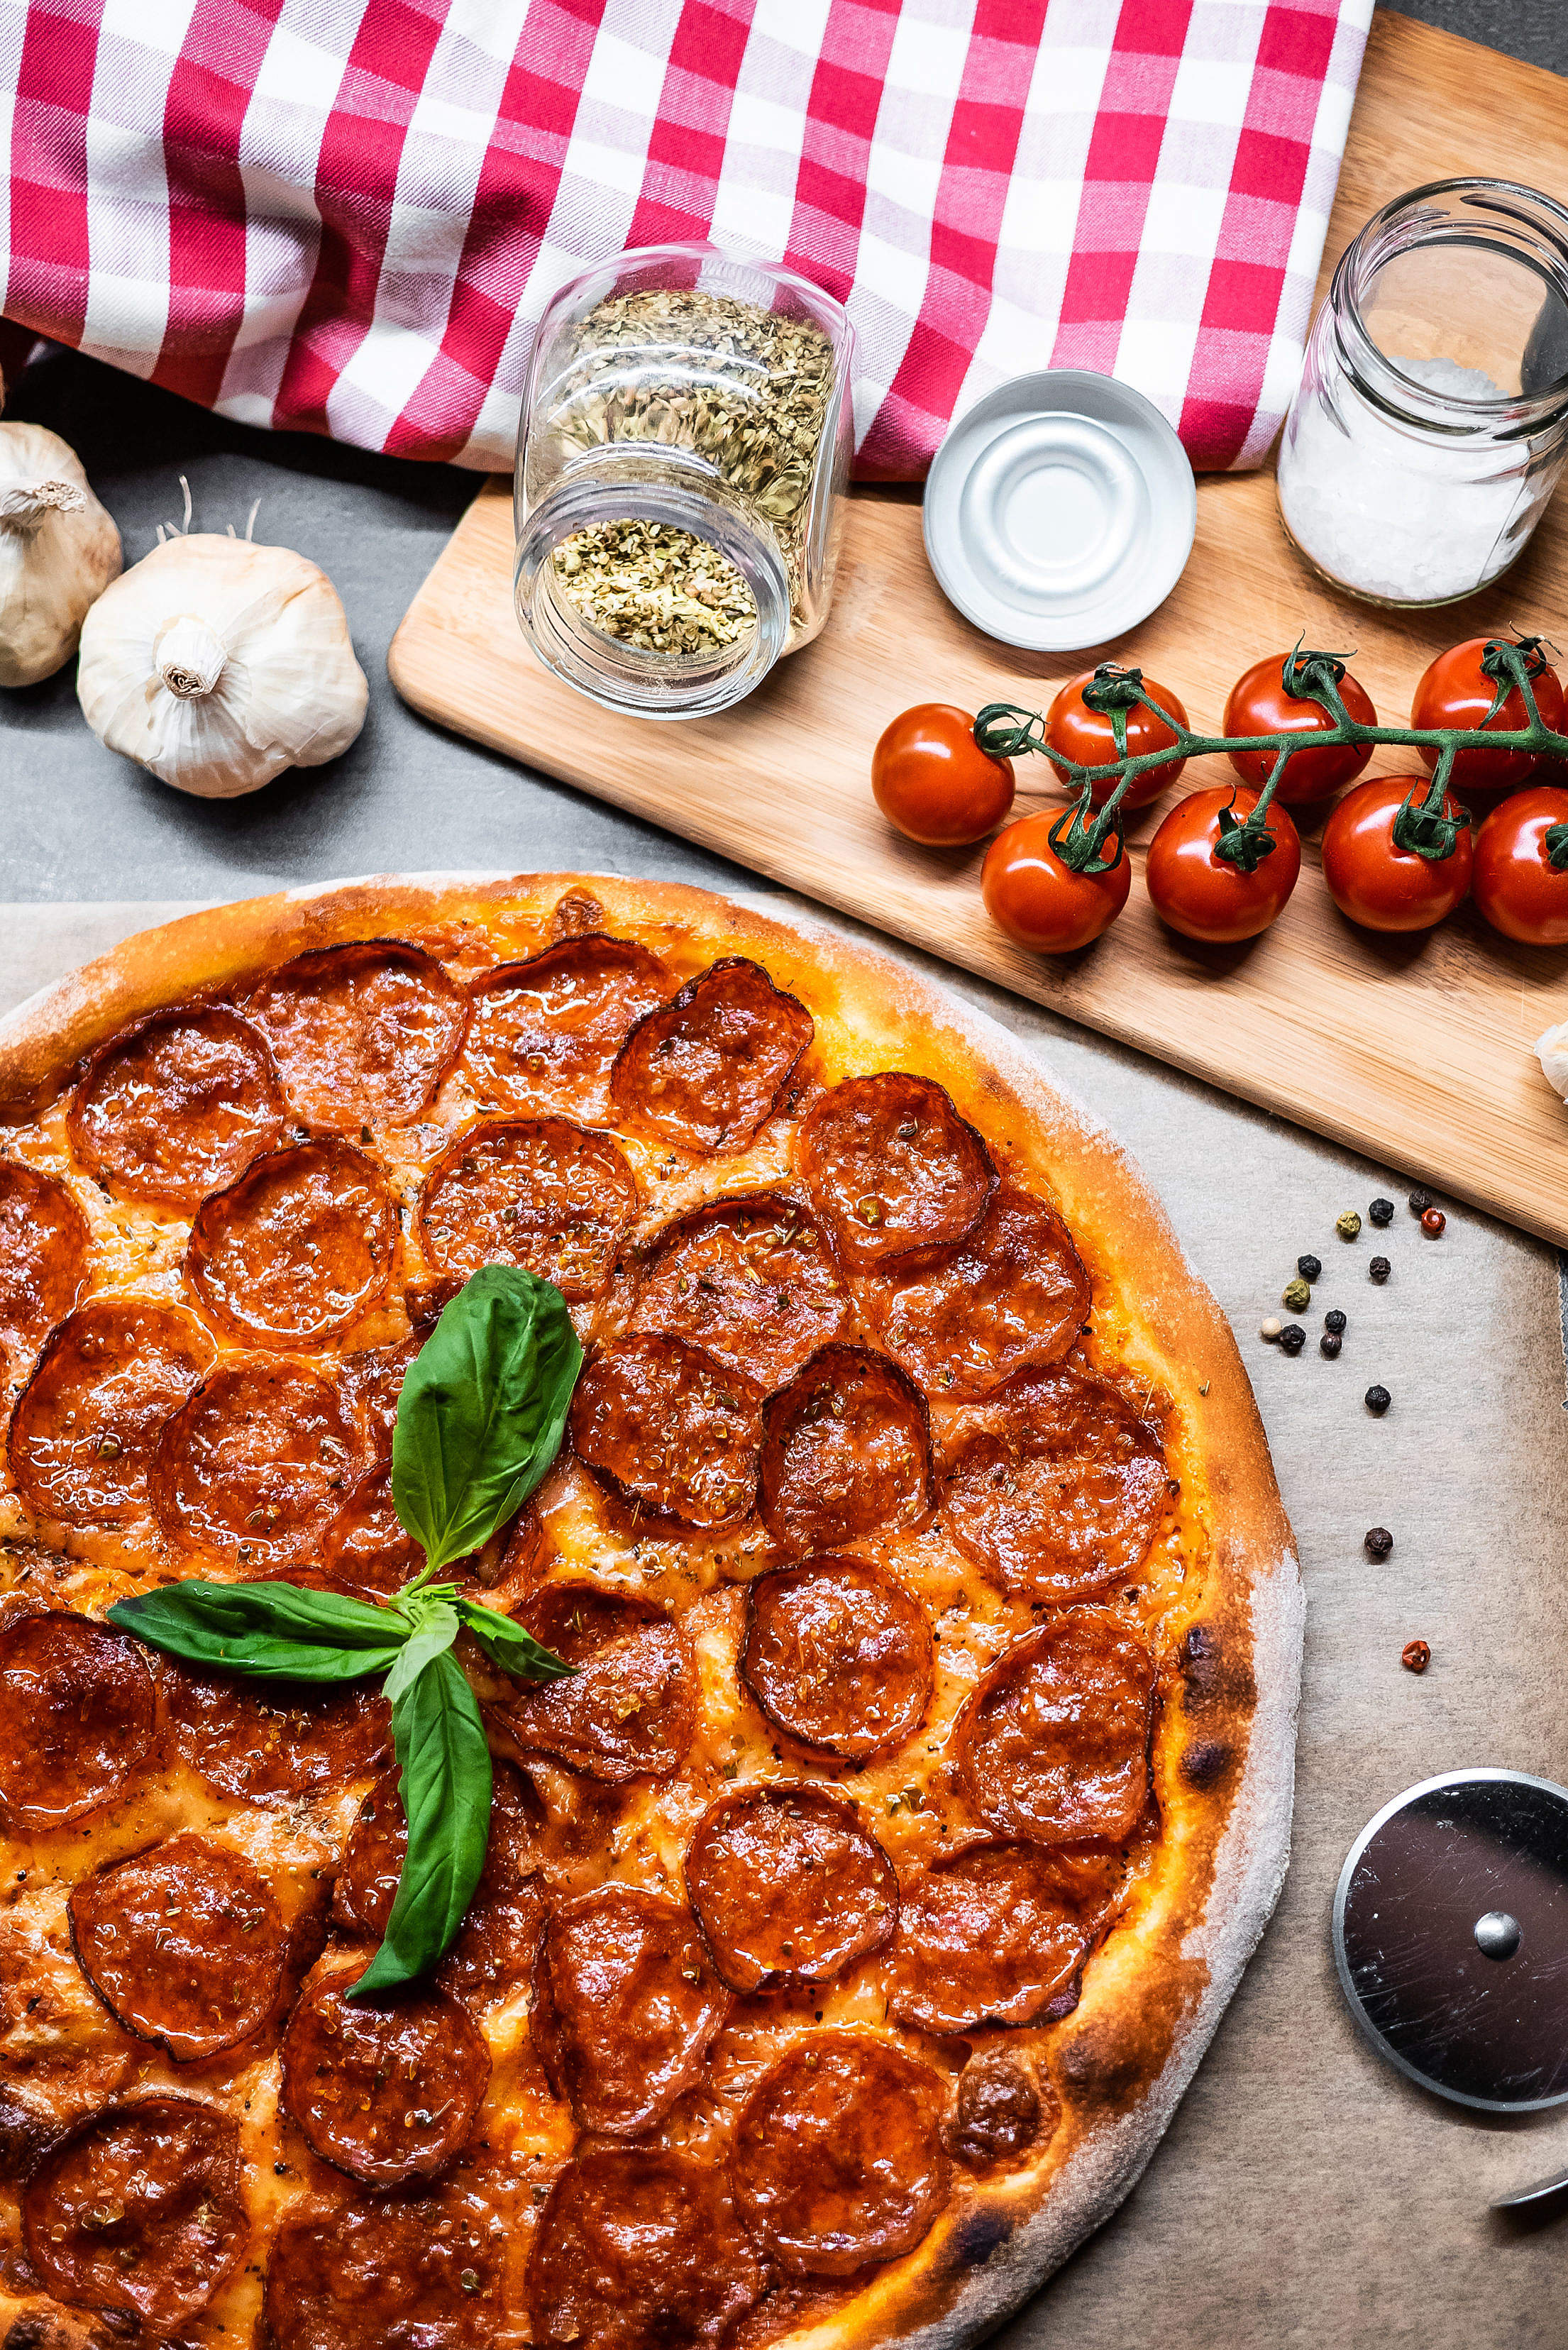 Pizza Salami Vertical Free Stock Photo